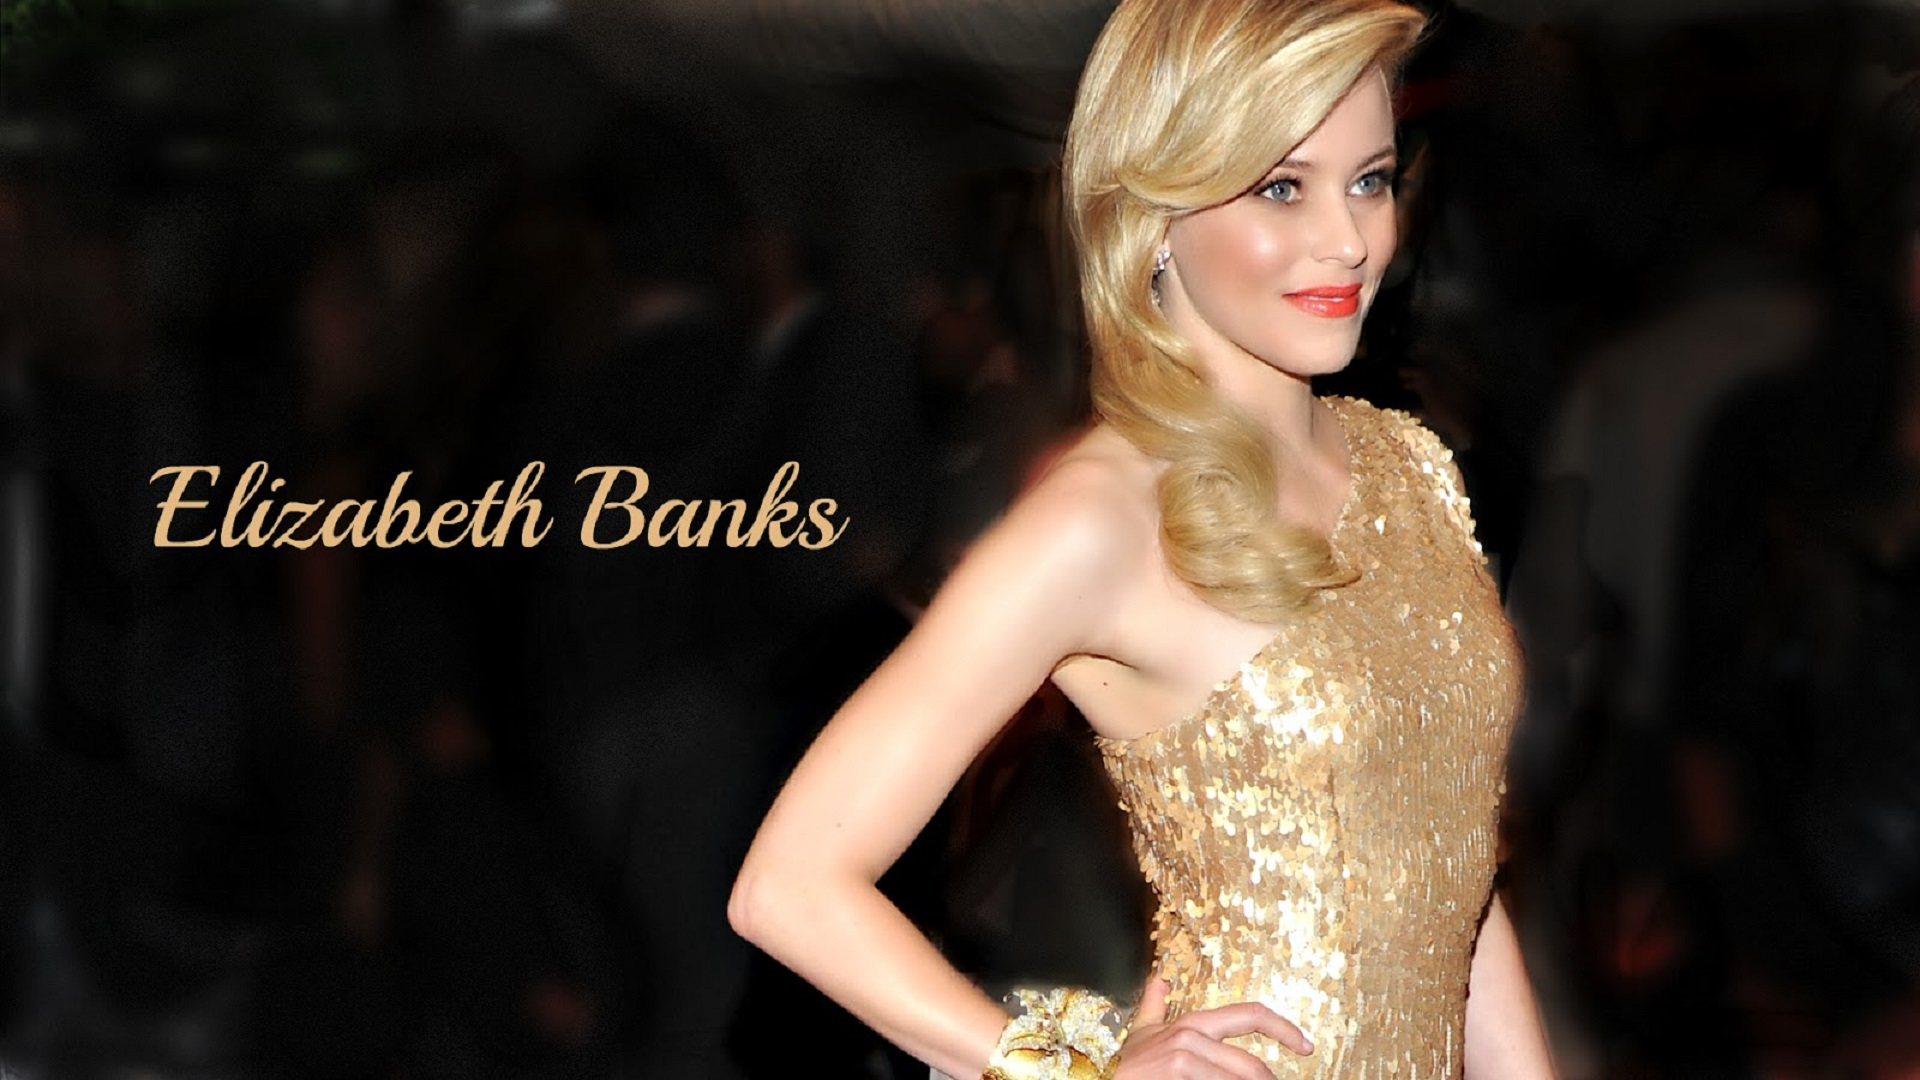 Elizabeth Banks Hd Desktop